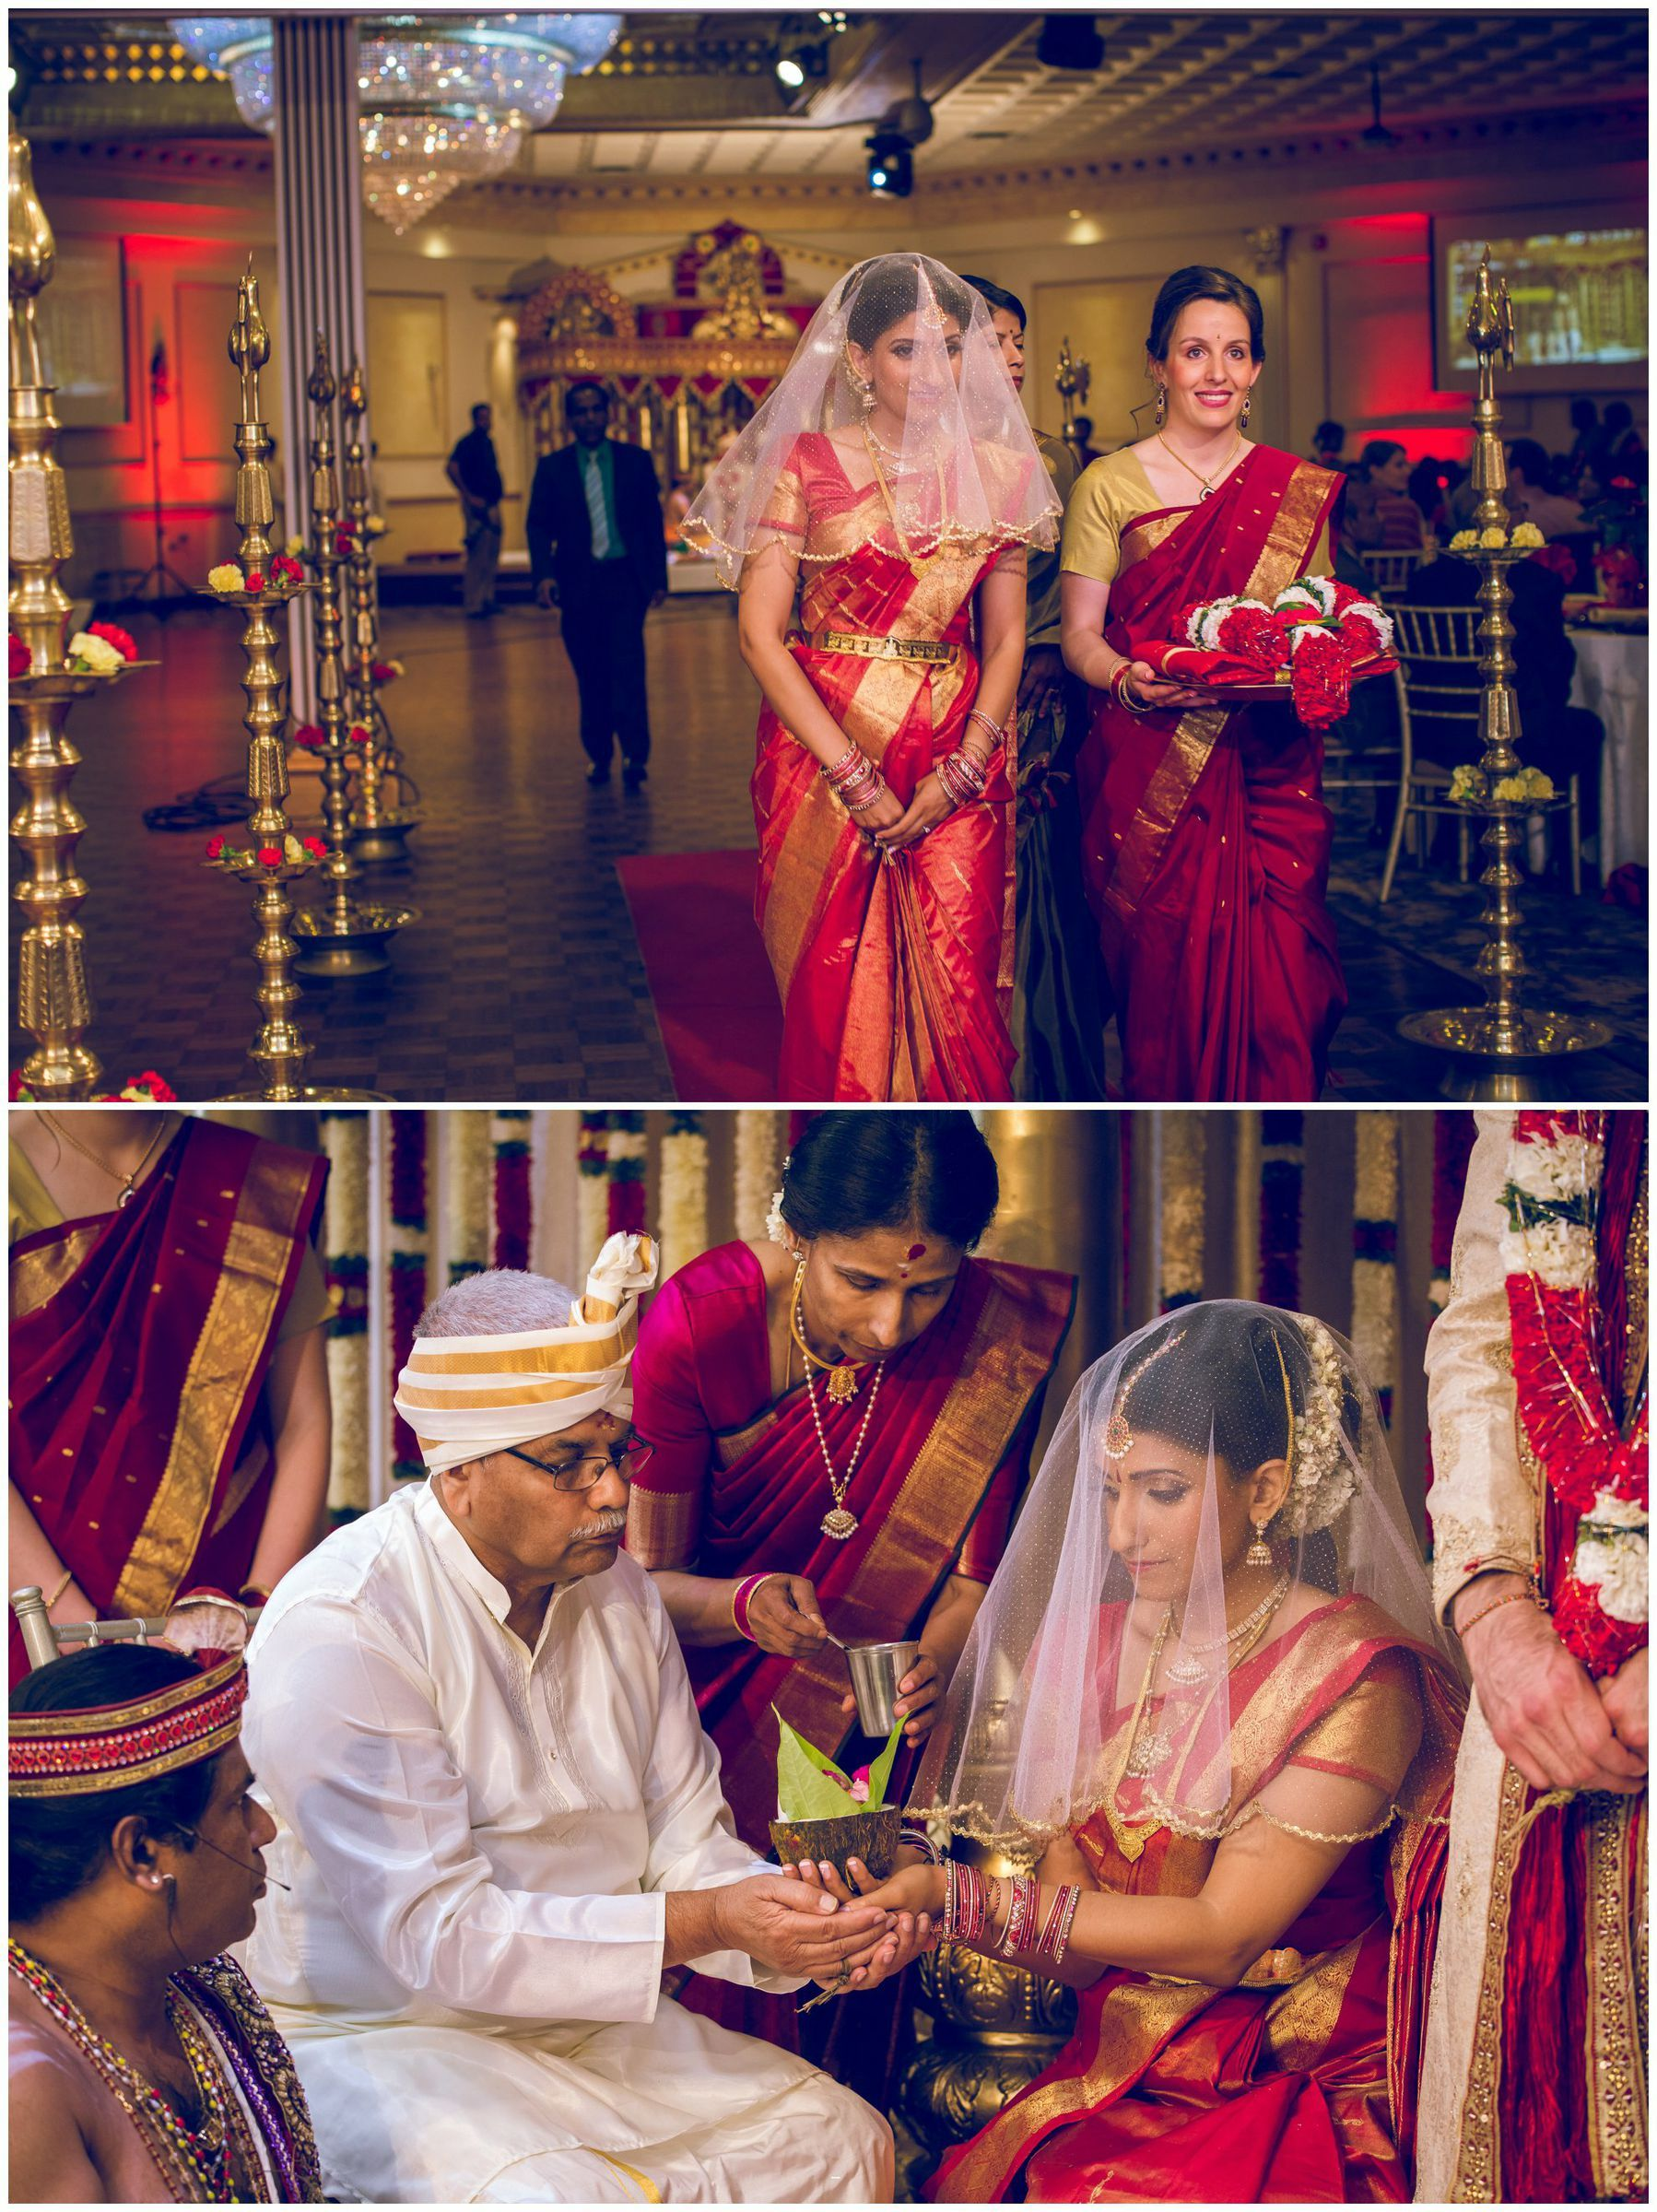 Toronto Indian Wedding Photographer Al Studios Abhi And Vince The Hindu Tamil Italian Fusion